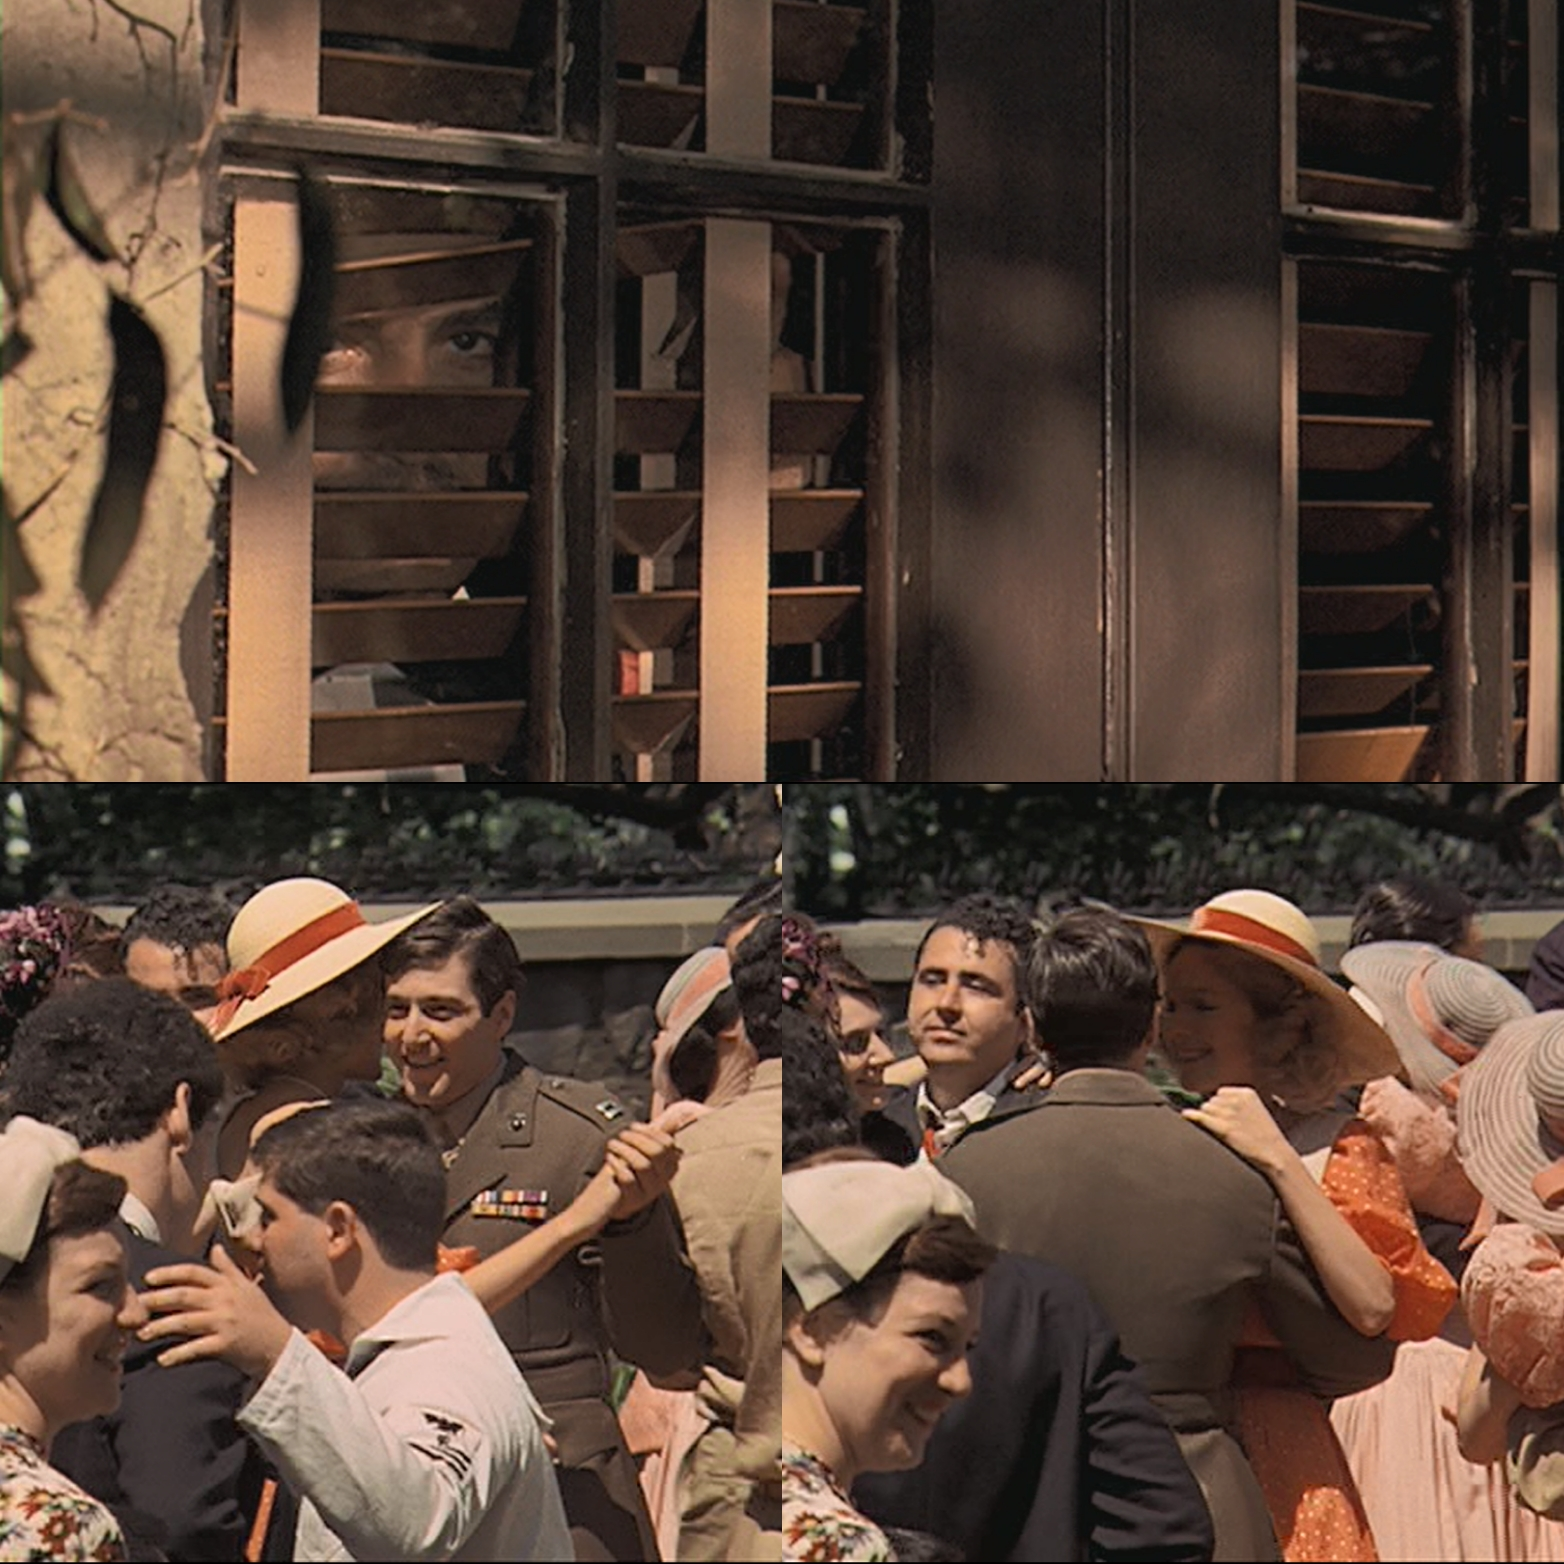 Minute 13: The Godfather-Why is Michael Late to His Sister's Wedding? - In Minute 13, Michael and Kay make they're first appearance. Amanda and Stephen wonder about the couple's wedding attendance habits and are boggled by the late arrival. They also discuss the length of Catholic weddings and some of the Don's political dealings.